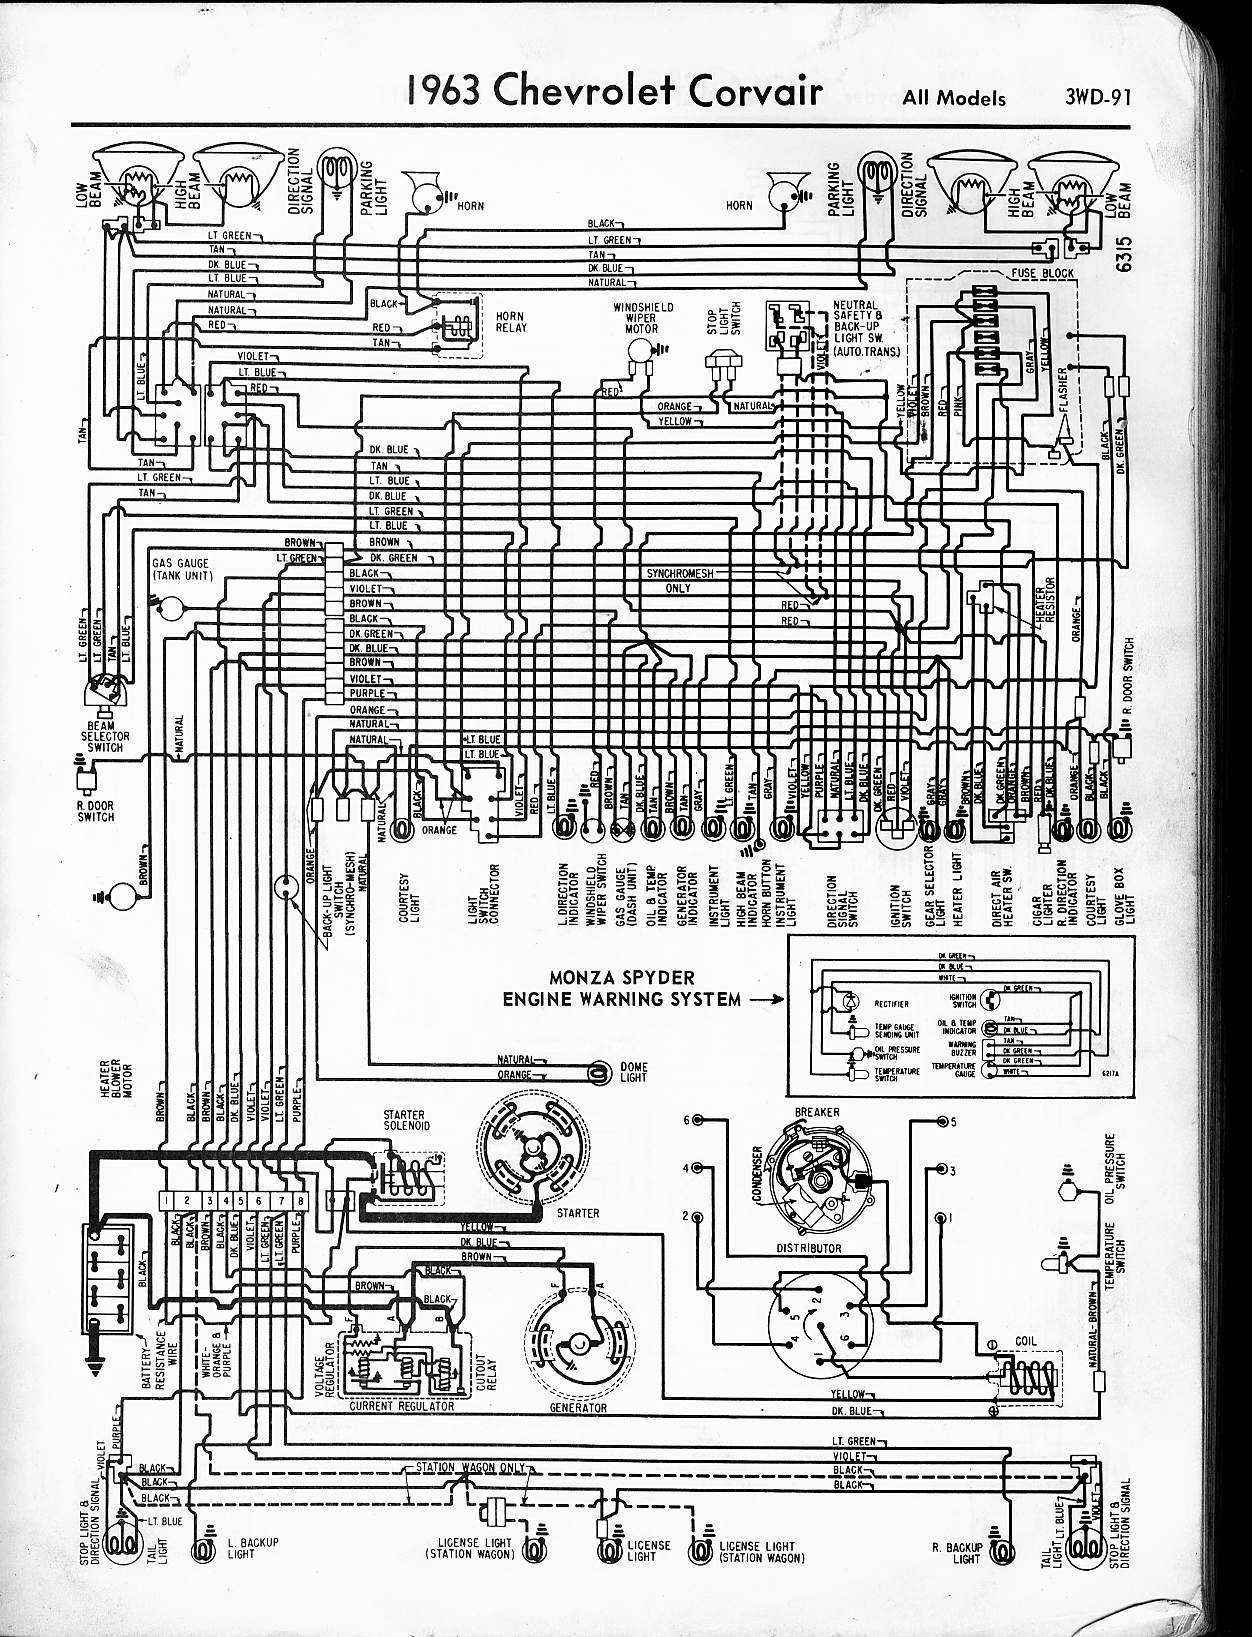 Corvair Windshield Wiper Wiring Diagram Data Valeo Motor 57 65 Chevy Diagrams Rh Oldcarmanualproject Com